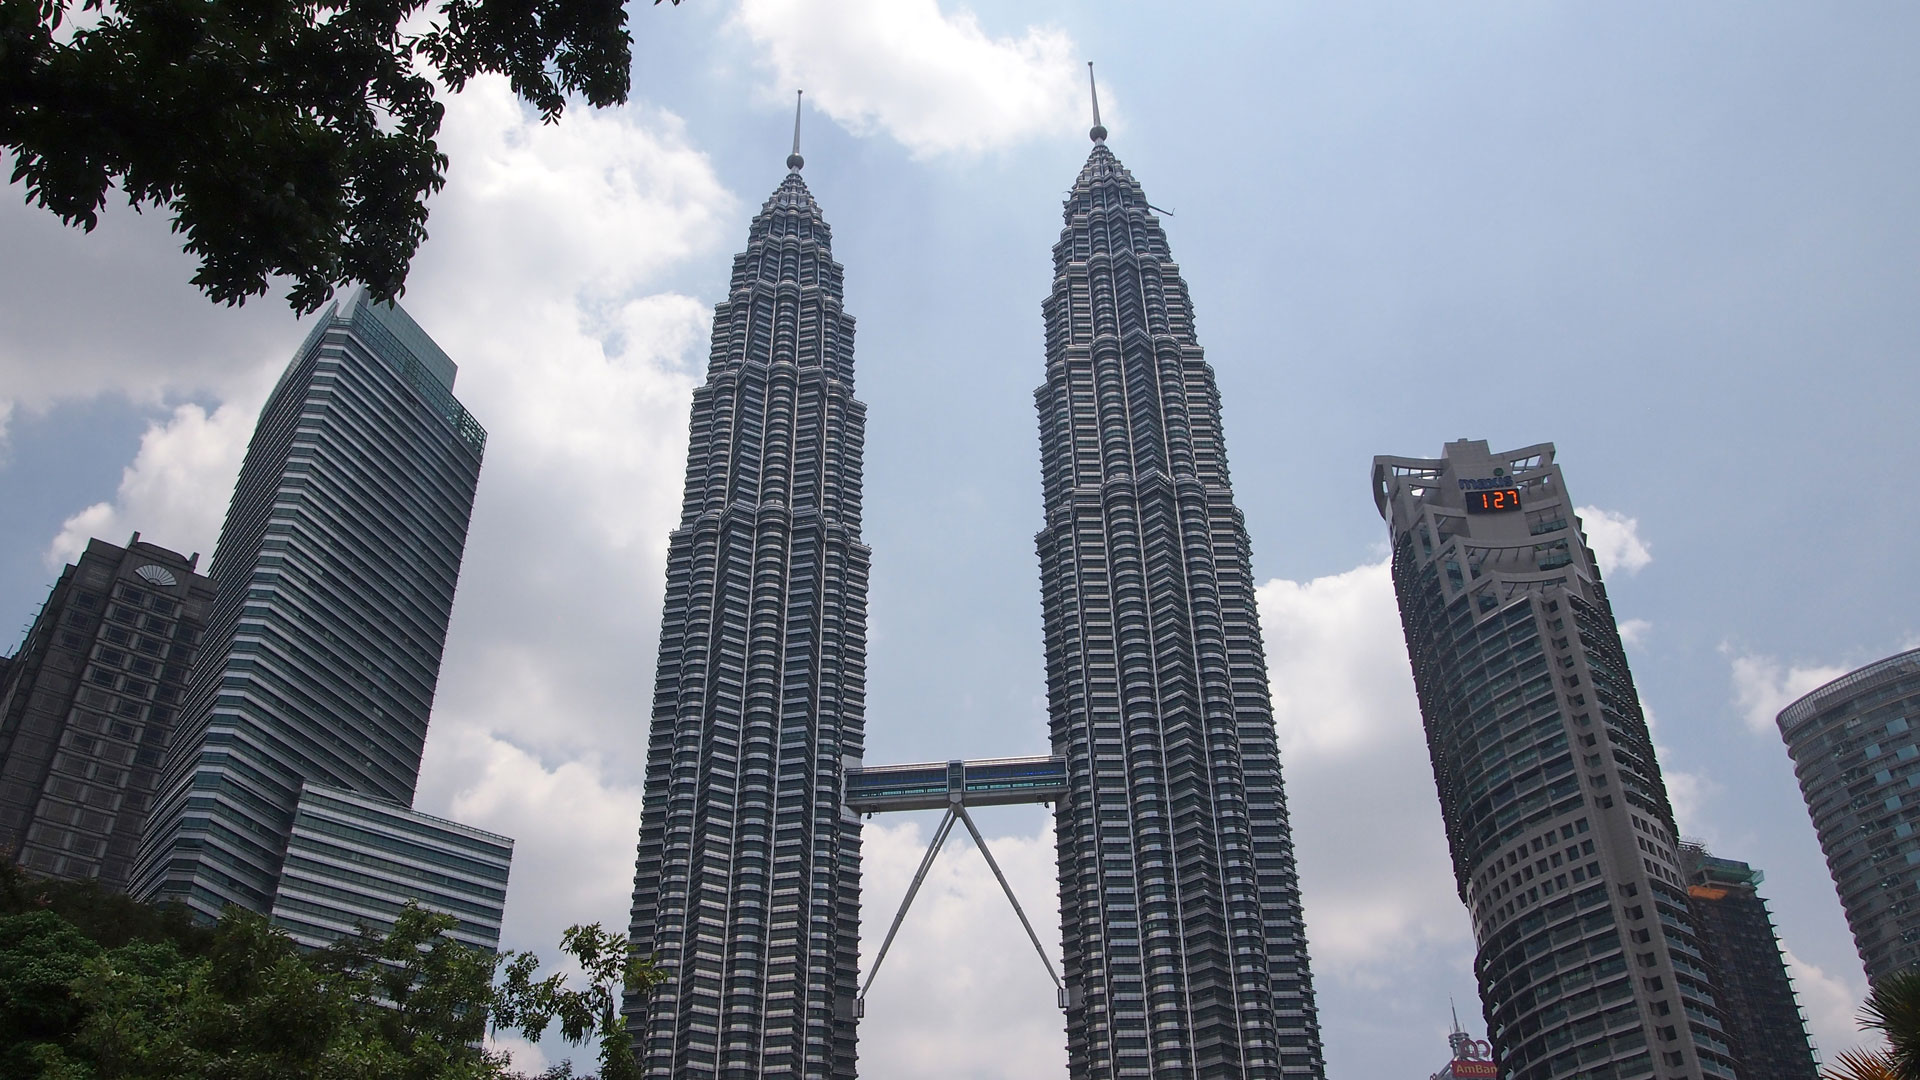 Things You Should Experience In Kuala Lumpur Travel Blog - 15 famous landmarks totally different perspective